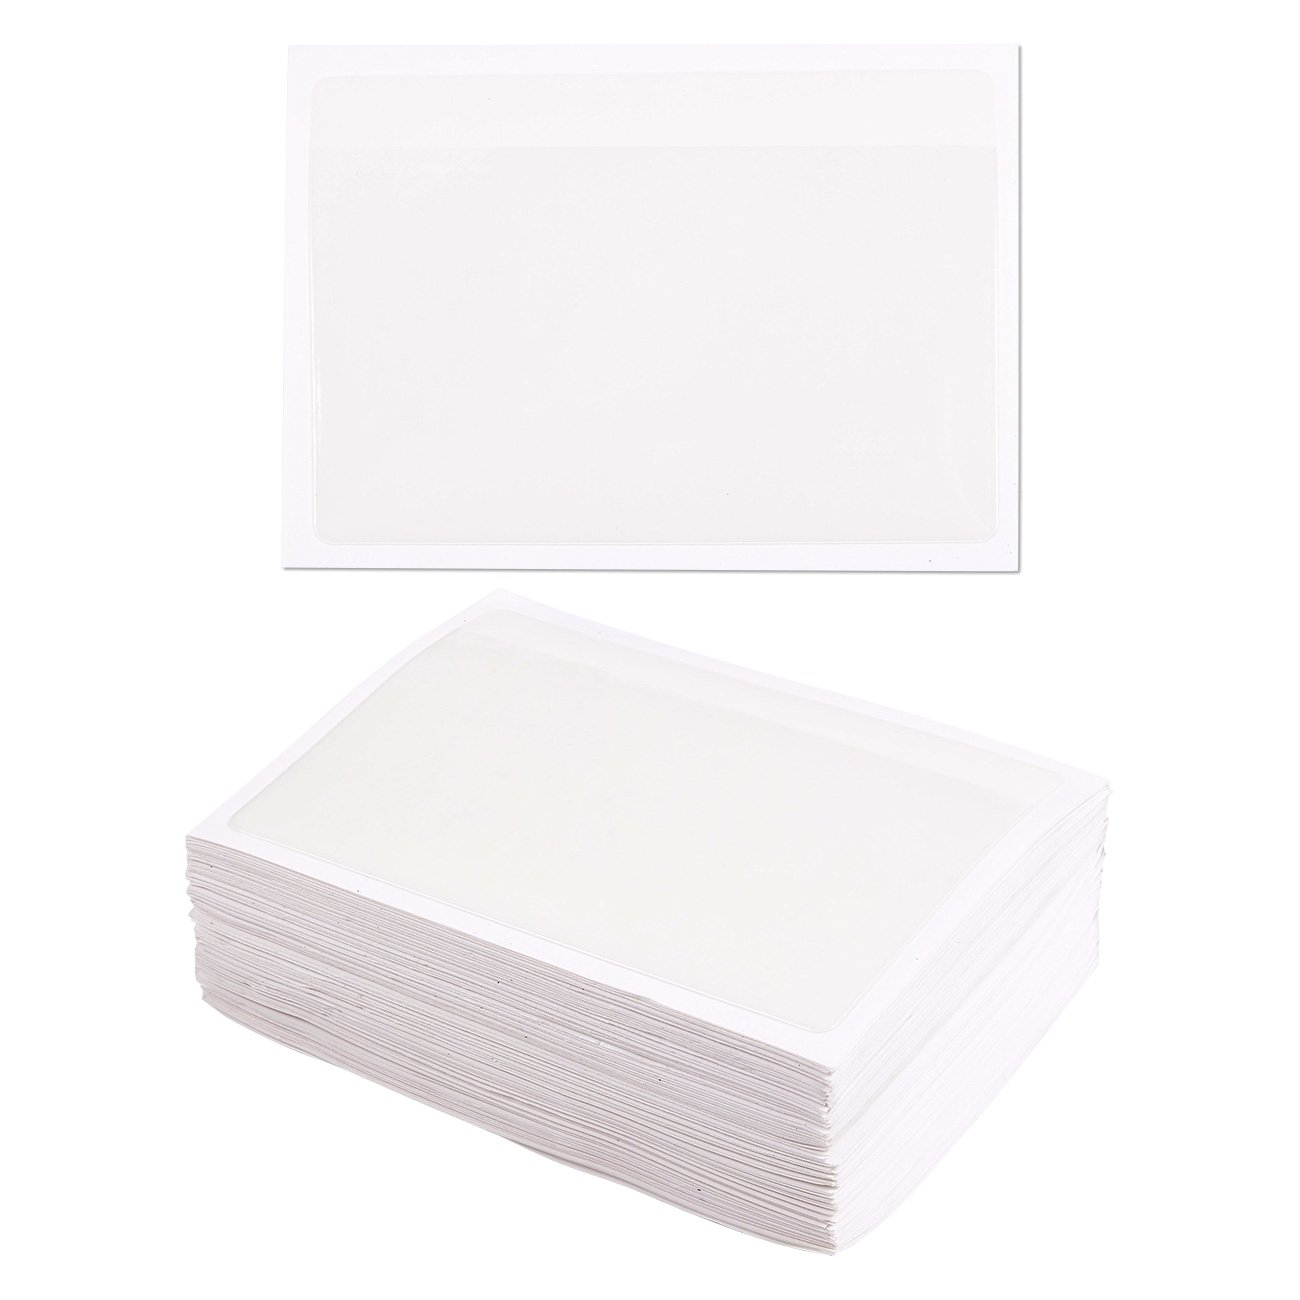 Juvale 100-Pack Self-Adhesive Index Card Pockets with Top Open for Loading - Ideal Card Holder for Organizing and Protecting Your Index Cards - Crystal Clear Plastic, 3.6 x 5.25 Inches